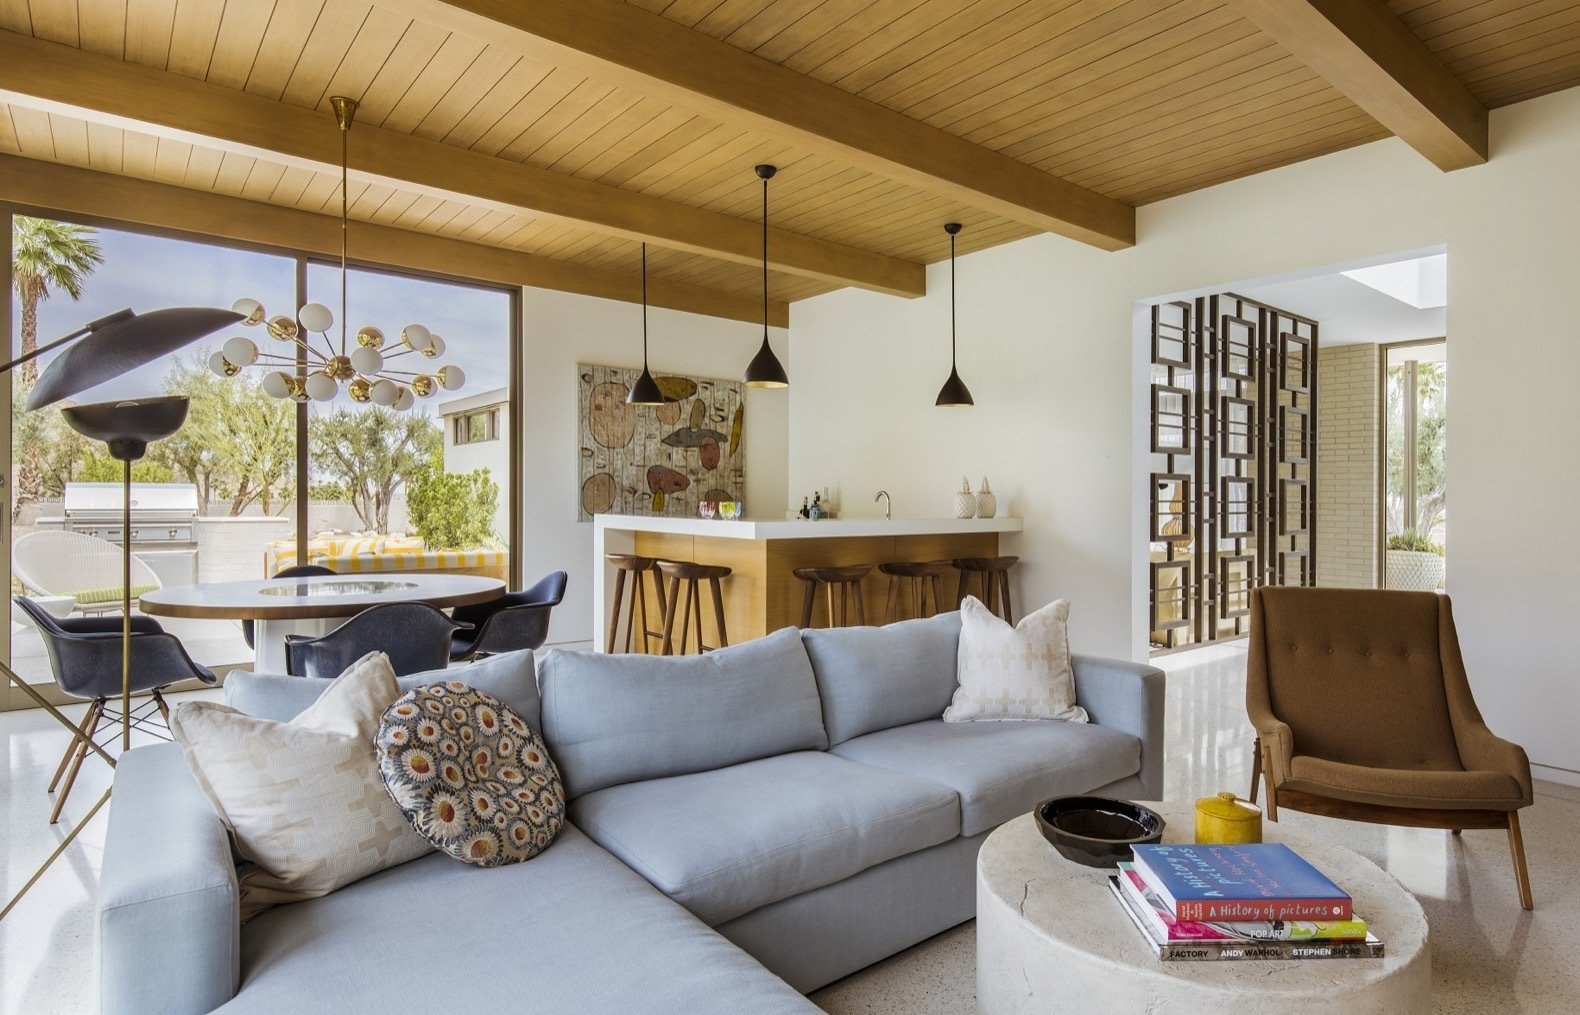 Living Room, Pendant Lighting, Chair, Coffee Tables, Terrazzo Floor, Sectional, and Recessed Lighting The home's terrazzo floors, fabricated by Architectural Concrete Innovations, are flecked with gold and brown accents.